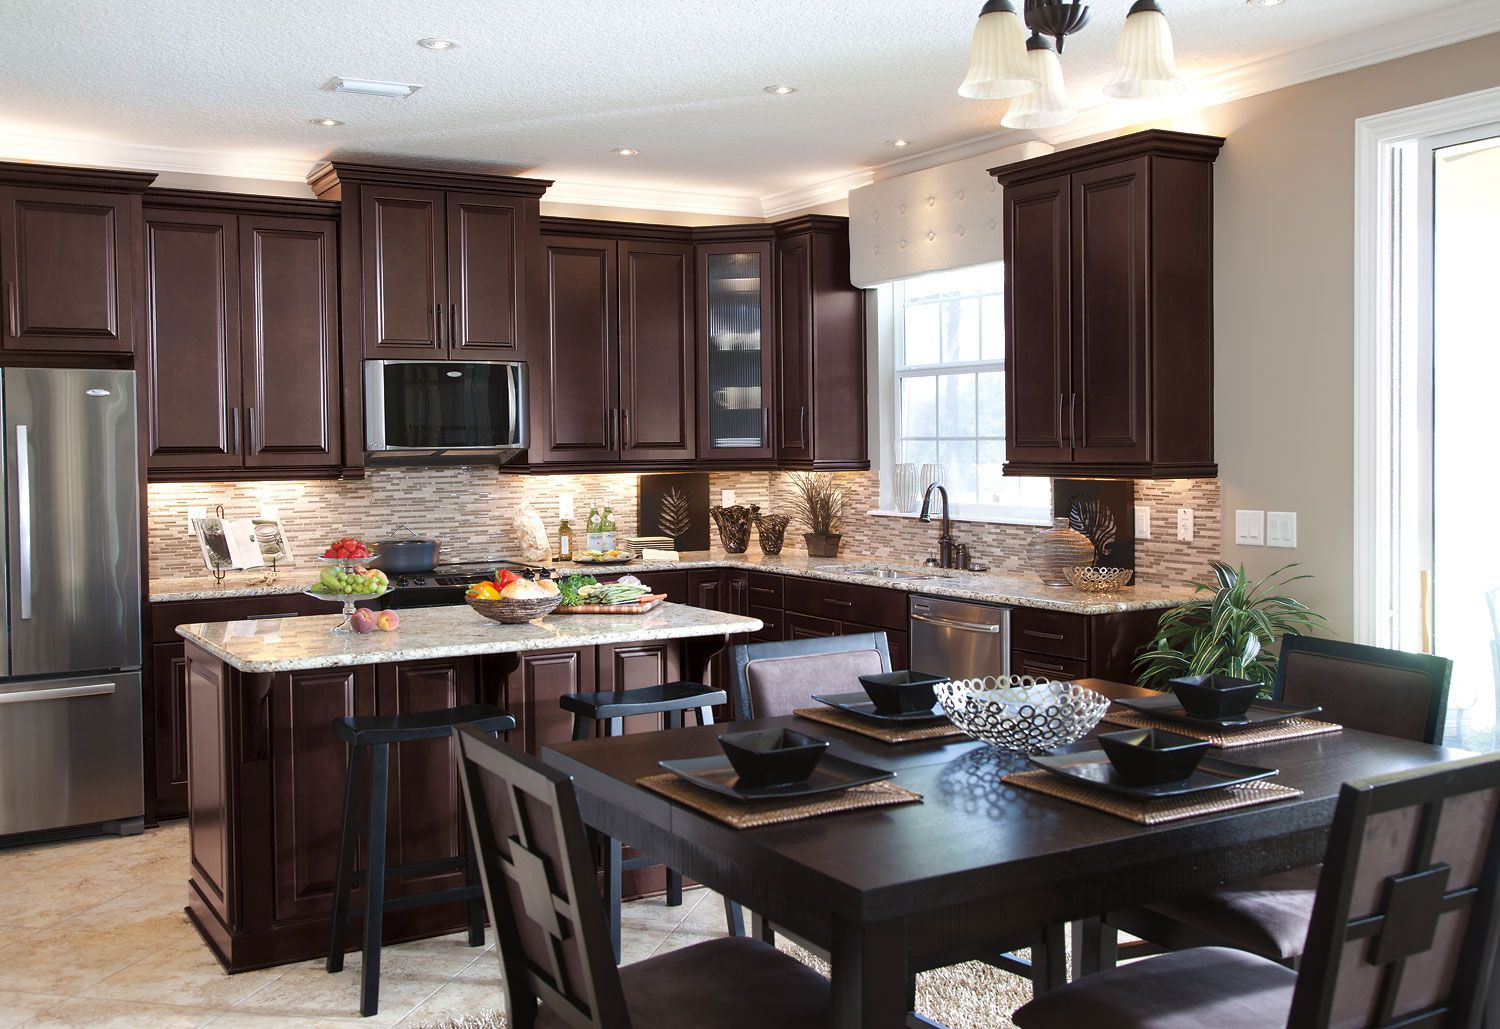 Timberlake Cabinets With Light Rail Lighting And Crown Molding